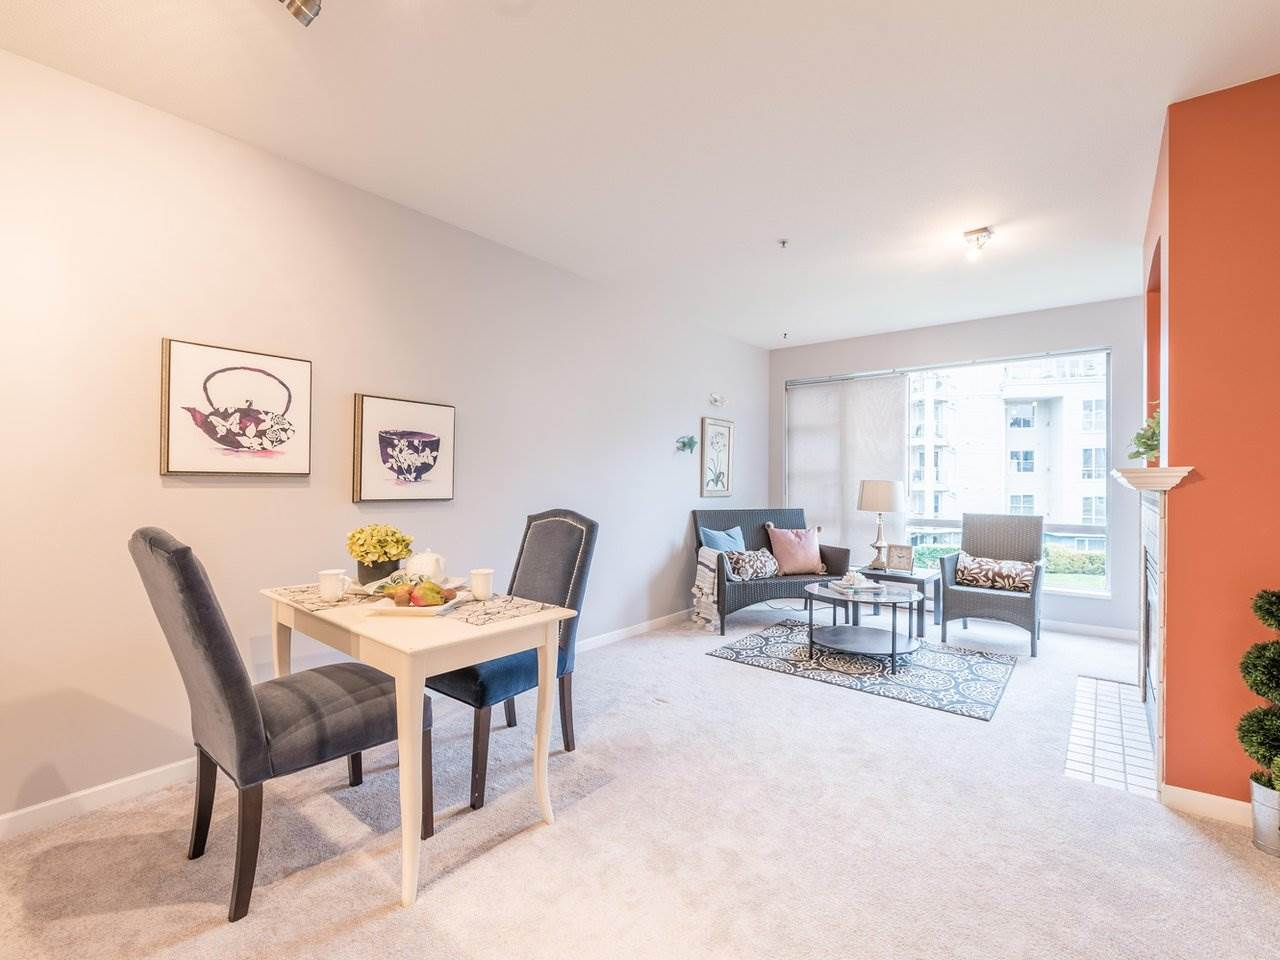 412 3629 DEERCREST DRIVE - Roche Point Apartment/Condo for sale, 1 Bedroom (R2525424) - #13